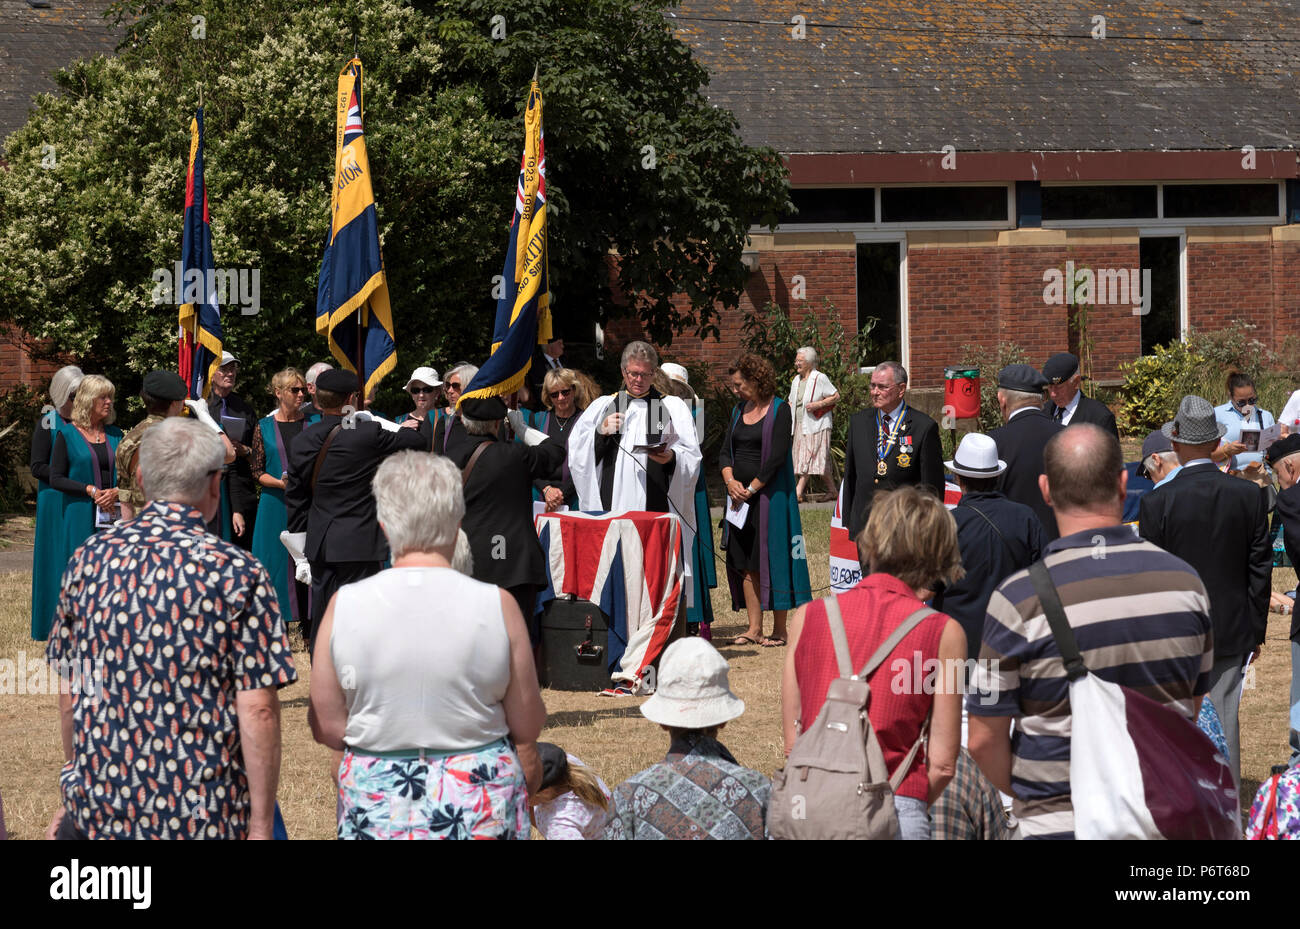 Sidmouth east Devon, England UK.  The Ham during a Armed Forces Day in Sidmouth - Stock Image